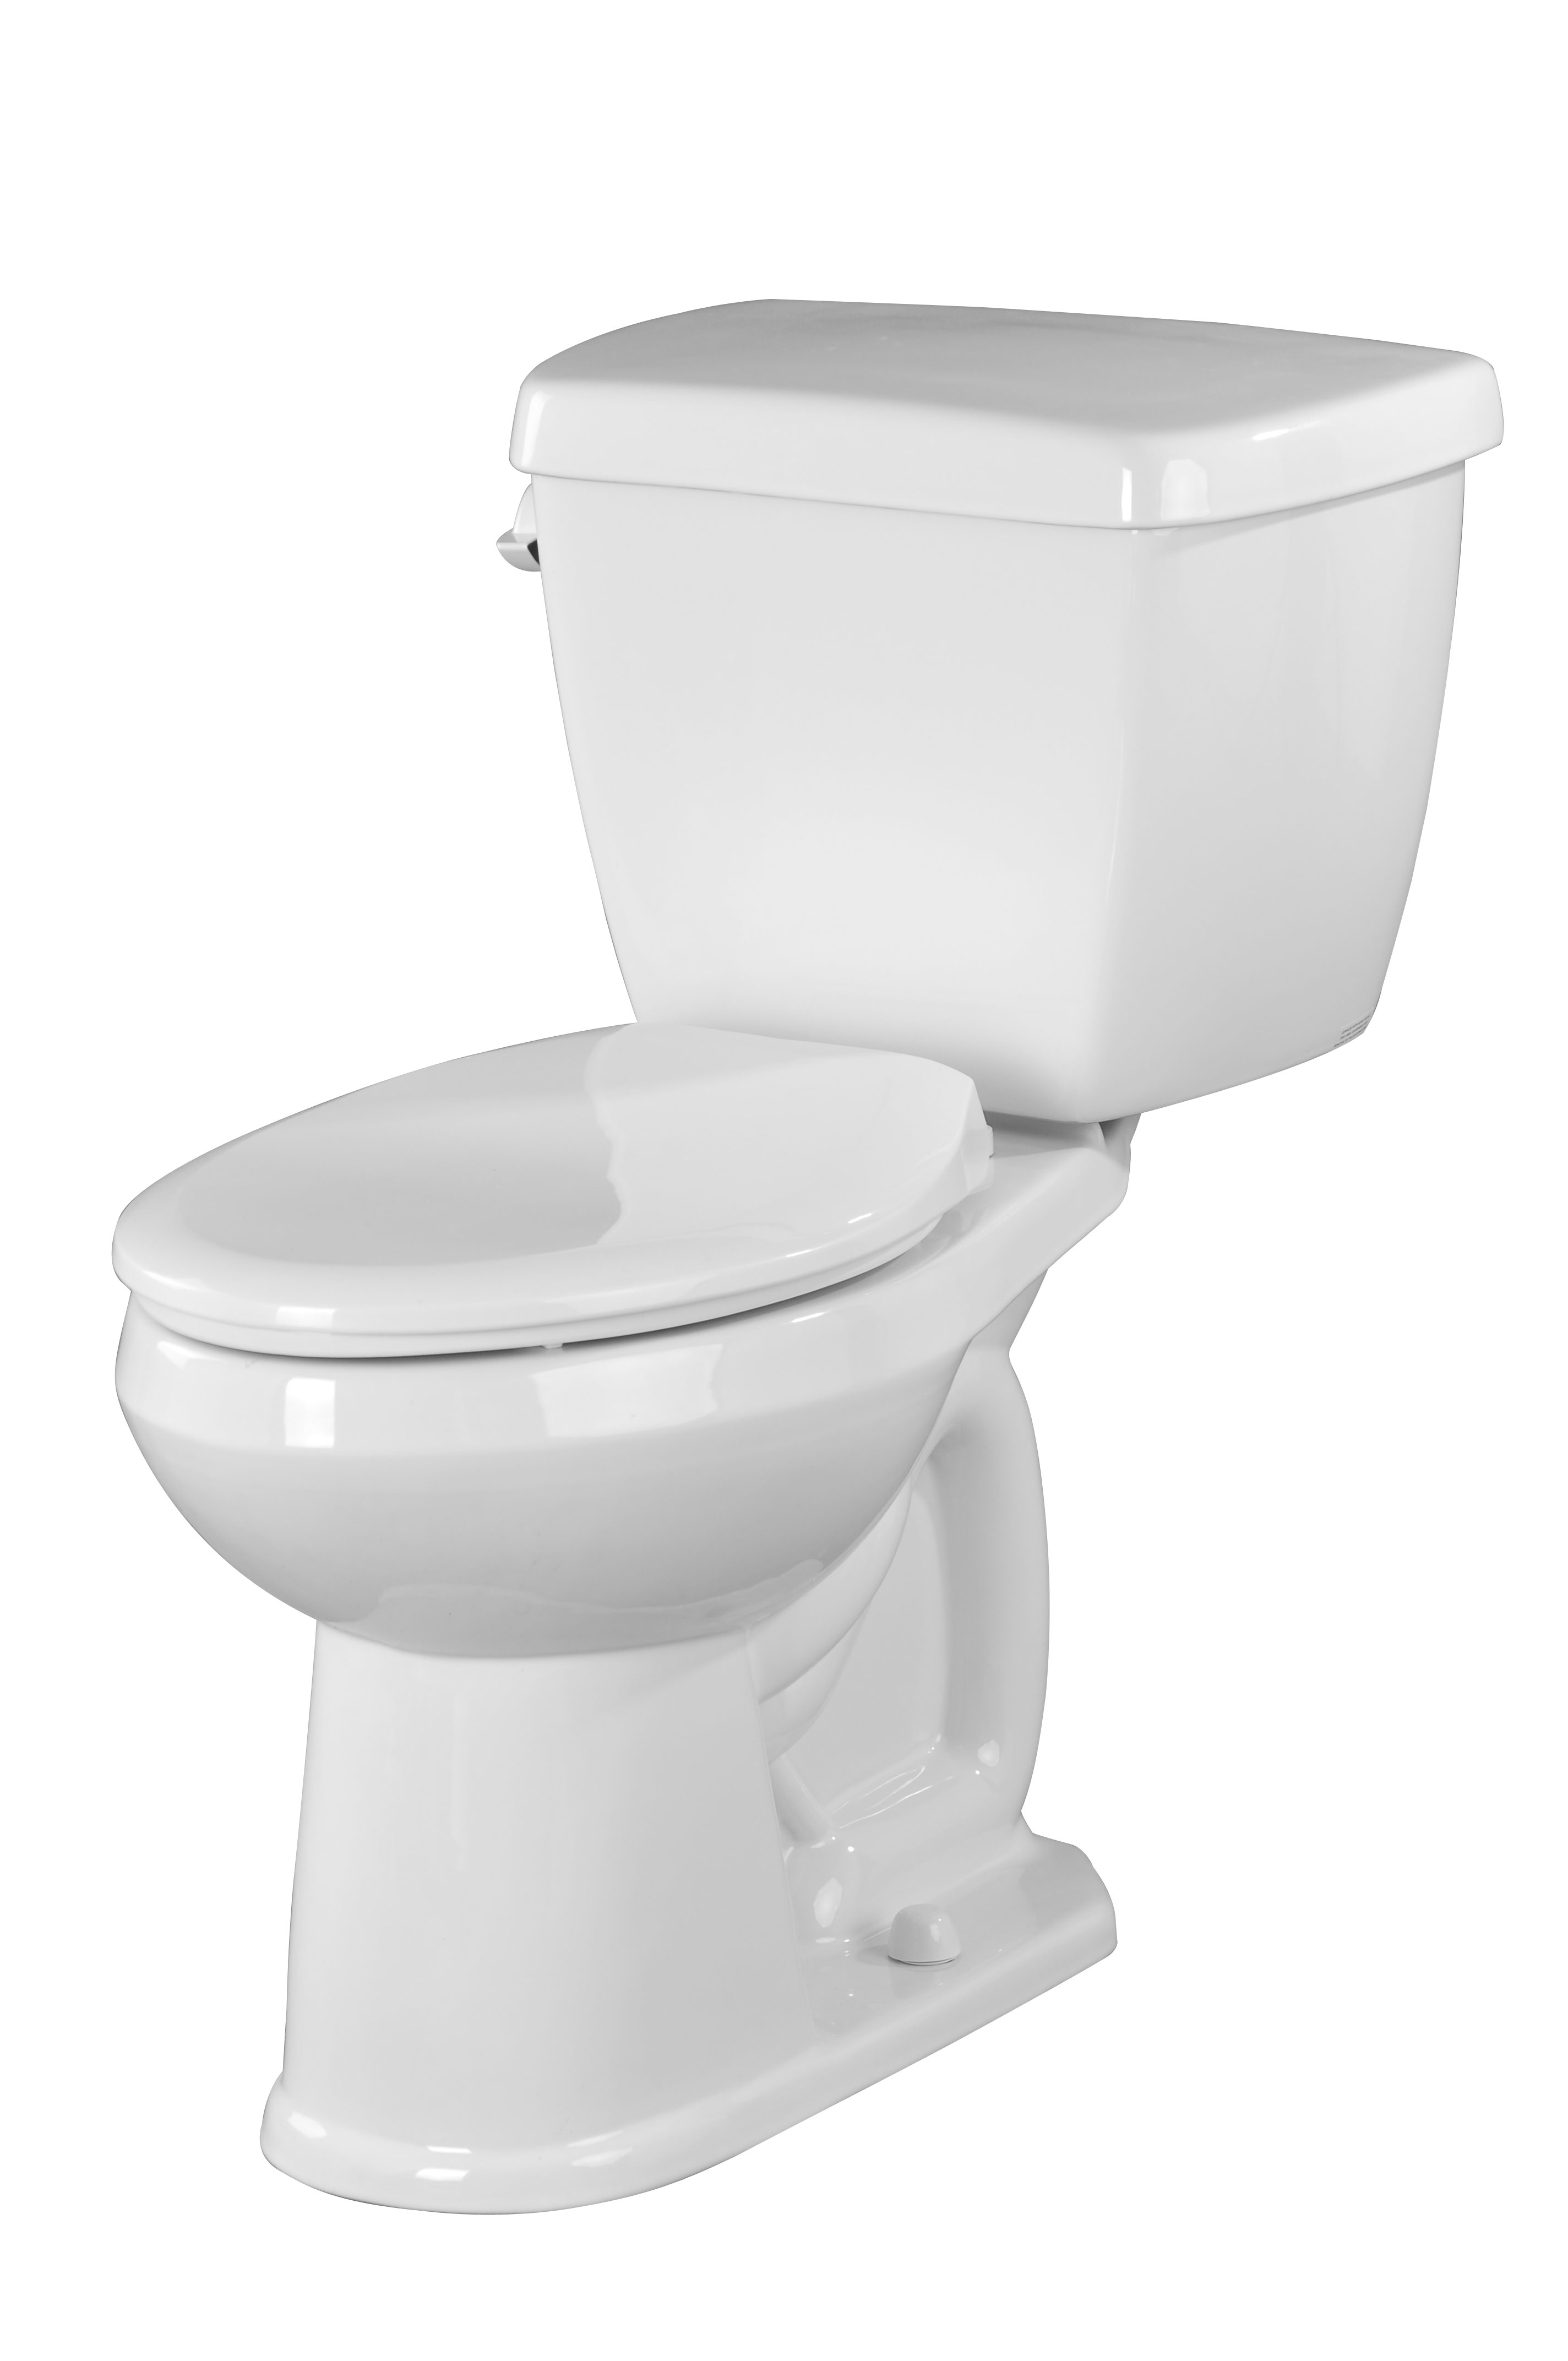 DISCONTINUED Avalanche  1 28 gpf 14  Rough In Two Piece Elongated  ErgoHeight  Toilet   Gerber PlumbingDISCONTINUED Avalanche  1 28 gpf 14  Rough In Two Piece Elongated  . Two In One Toilet Seat. Home Design Ideas